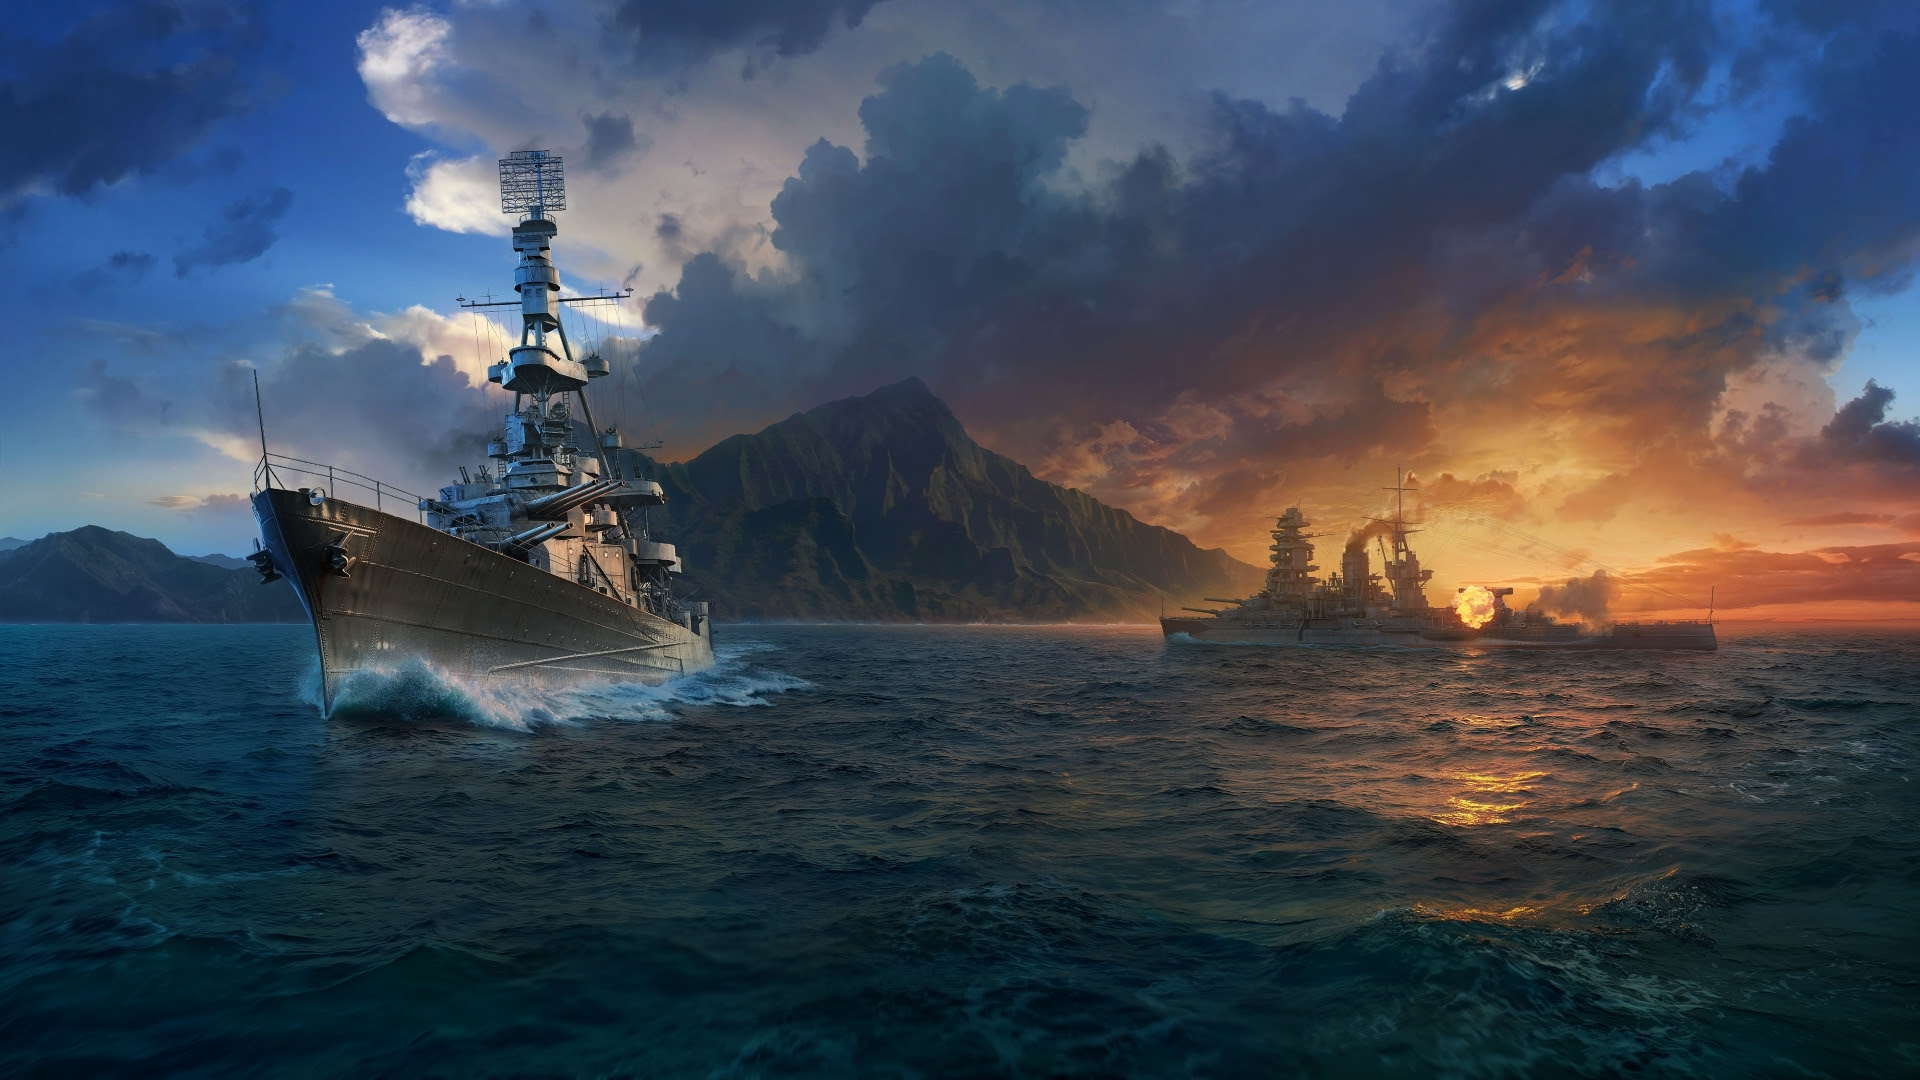 960x540 World Of Warships 2016 960x540 Resolution Hd 4k Wallpapers